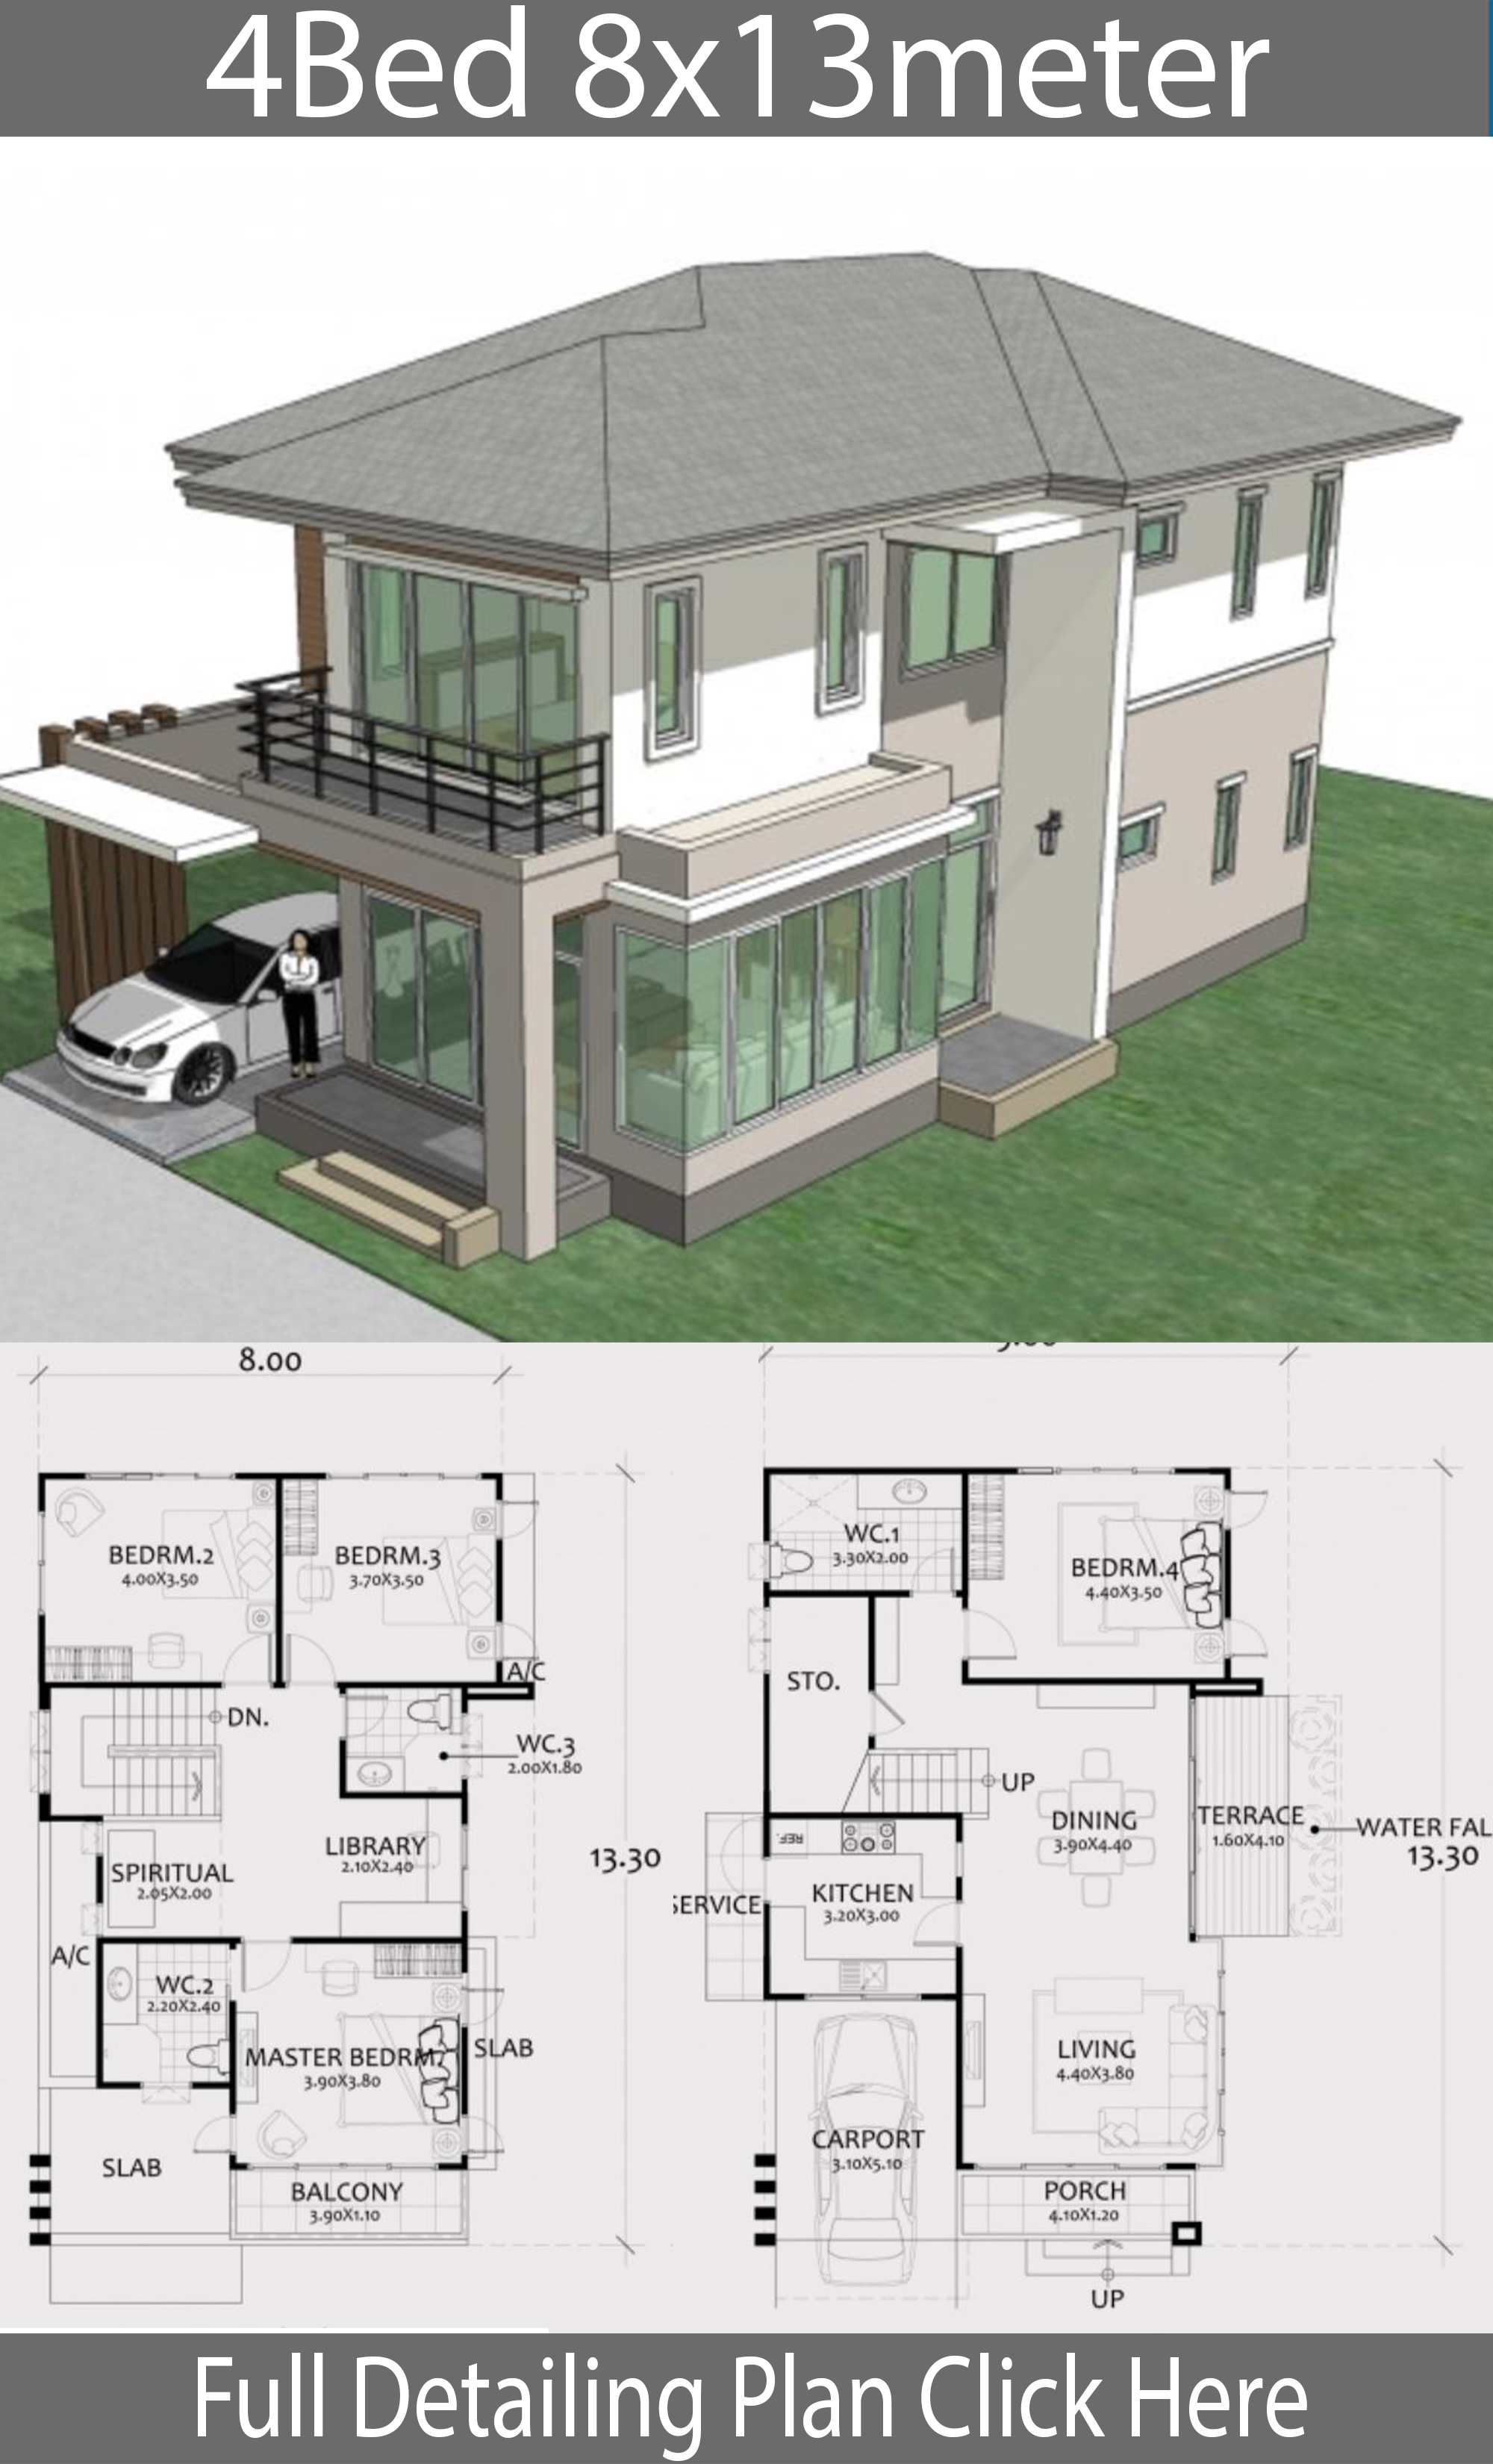 Home Design Plan 8x13m with 4 Bedrooms. - House Plans 3D